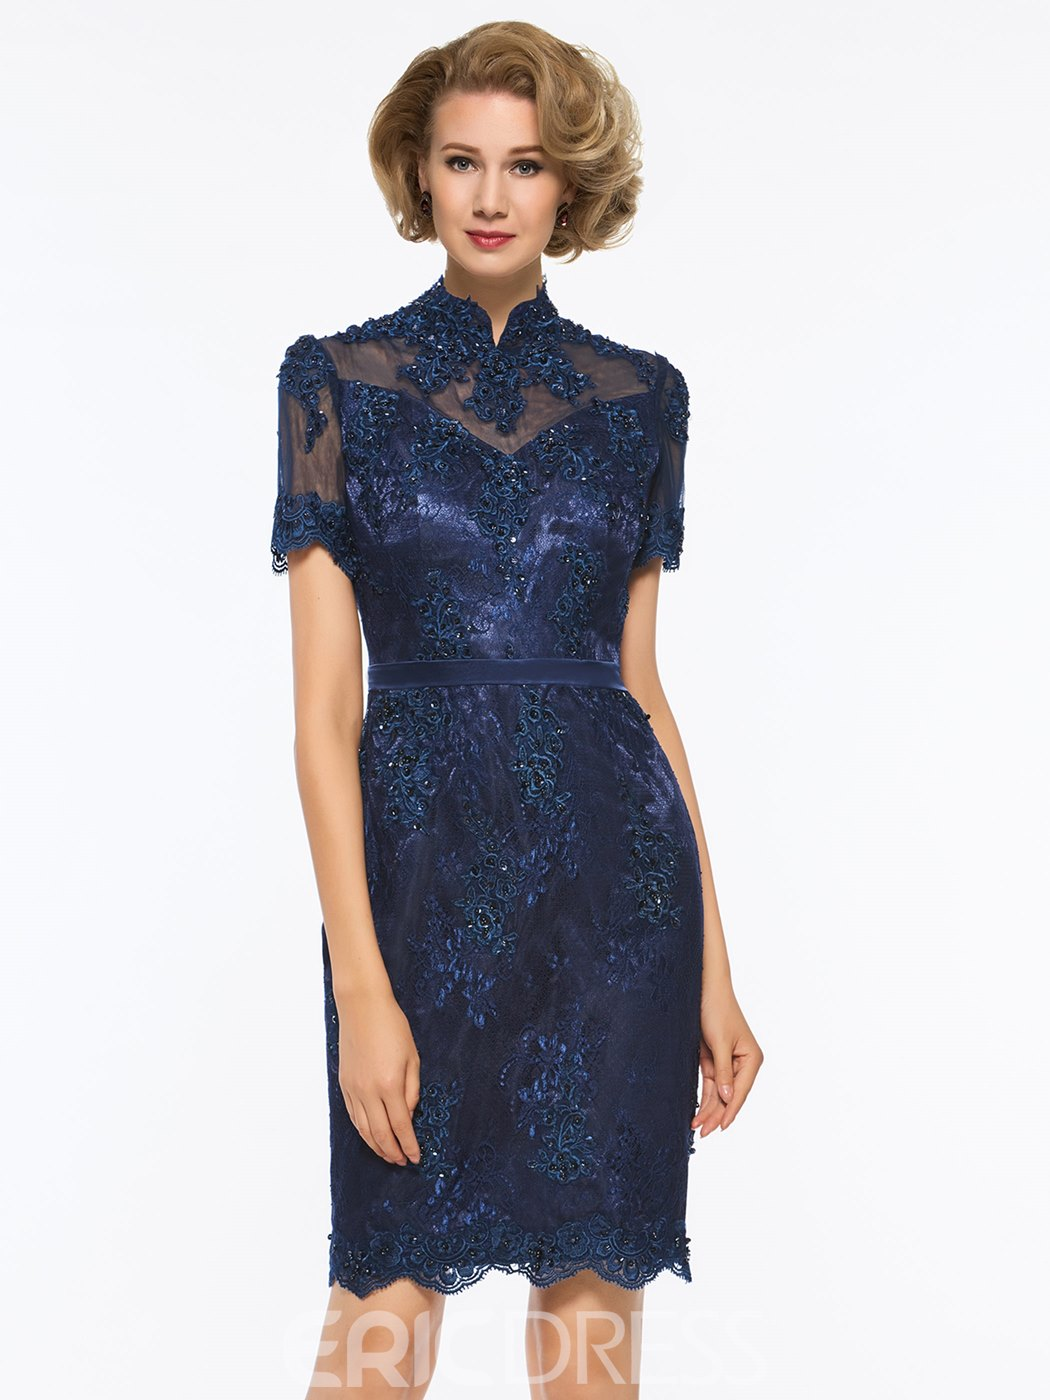 a59cb6cd076 Ericdress Short Sleeves High Neck Vintage Sheath Knee Length Mother of The Bride  Dress(13005391)